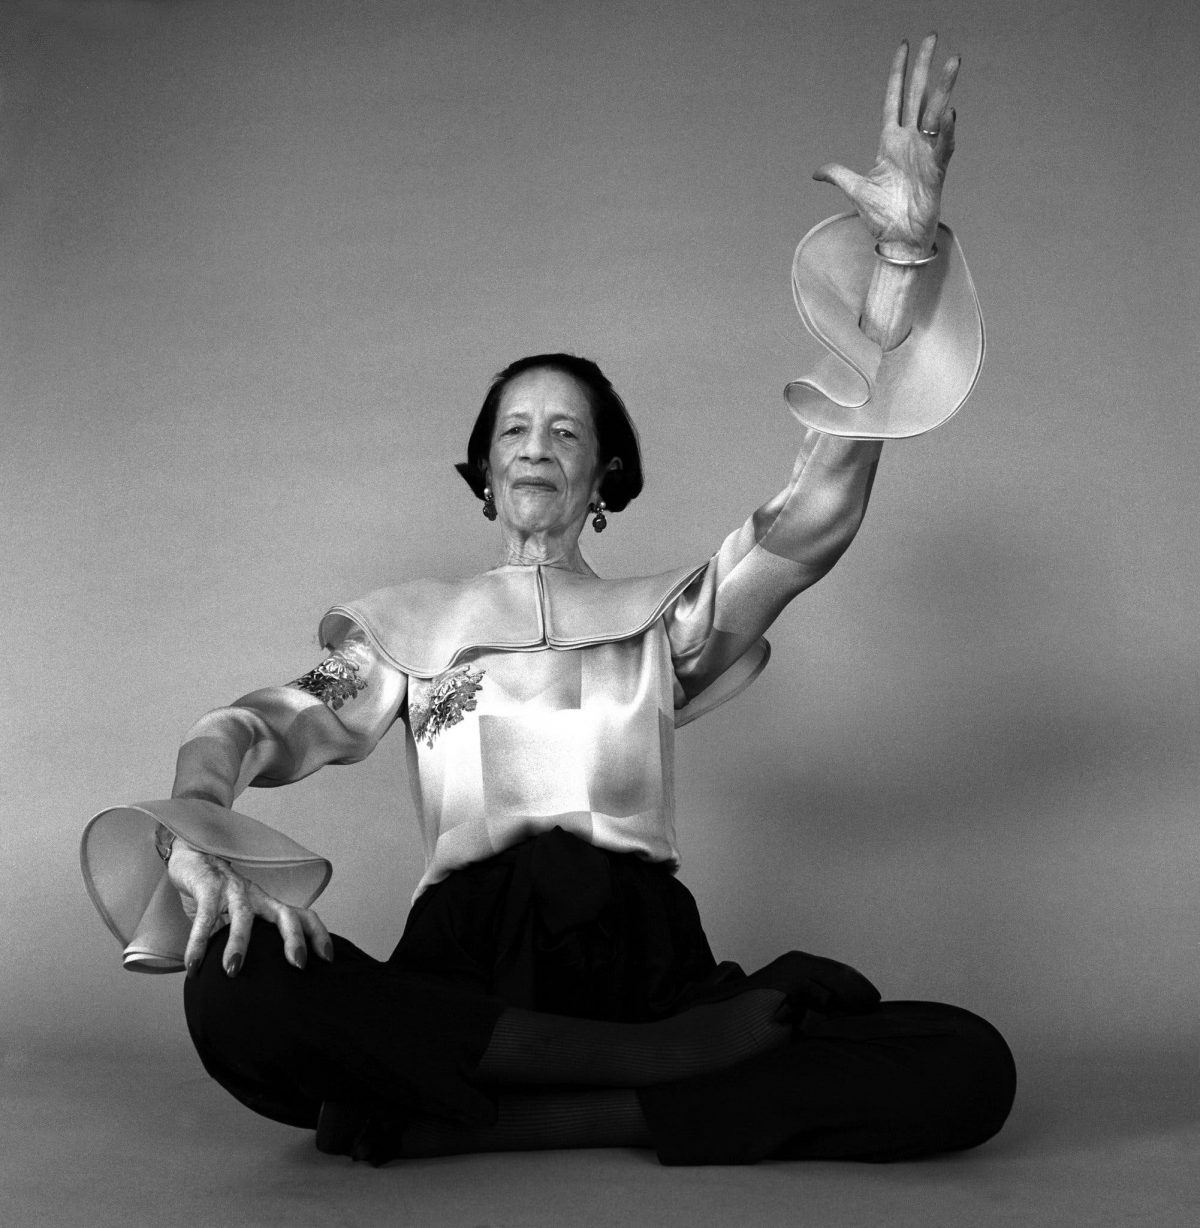 Diana Vreeland was editor-in-chief at Vogue from 1963 until 1971 and then consultant to the Costume Institute of the Metropolitan Museum of Art, New York.